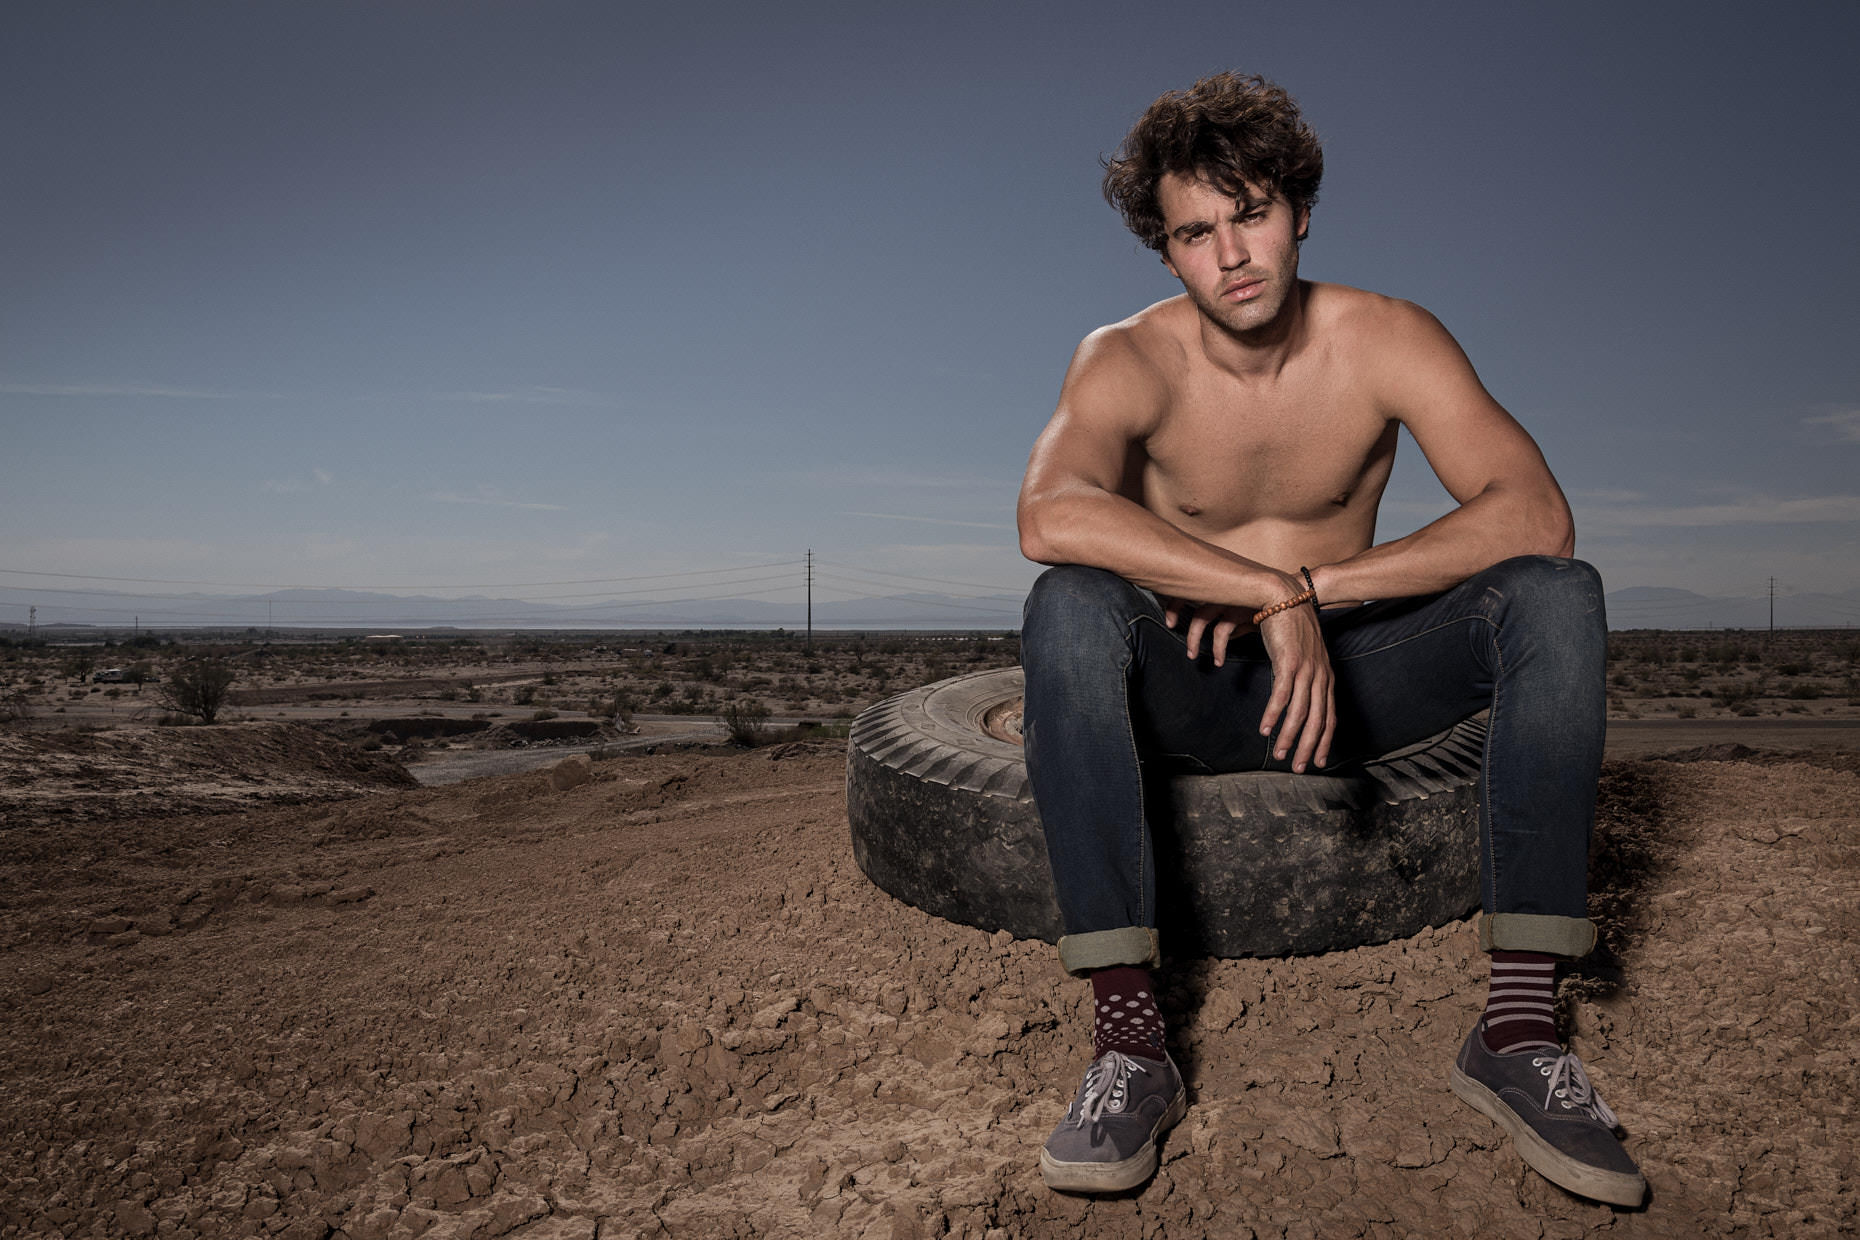 Environmental portrait of a man sitting on a tire in the California desert by photographer Jason Tracy